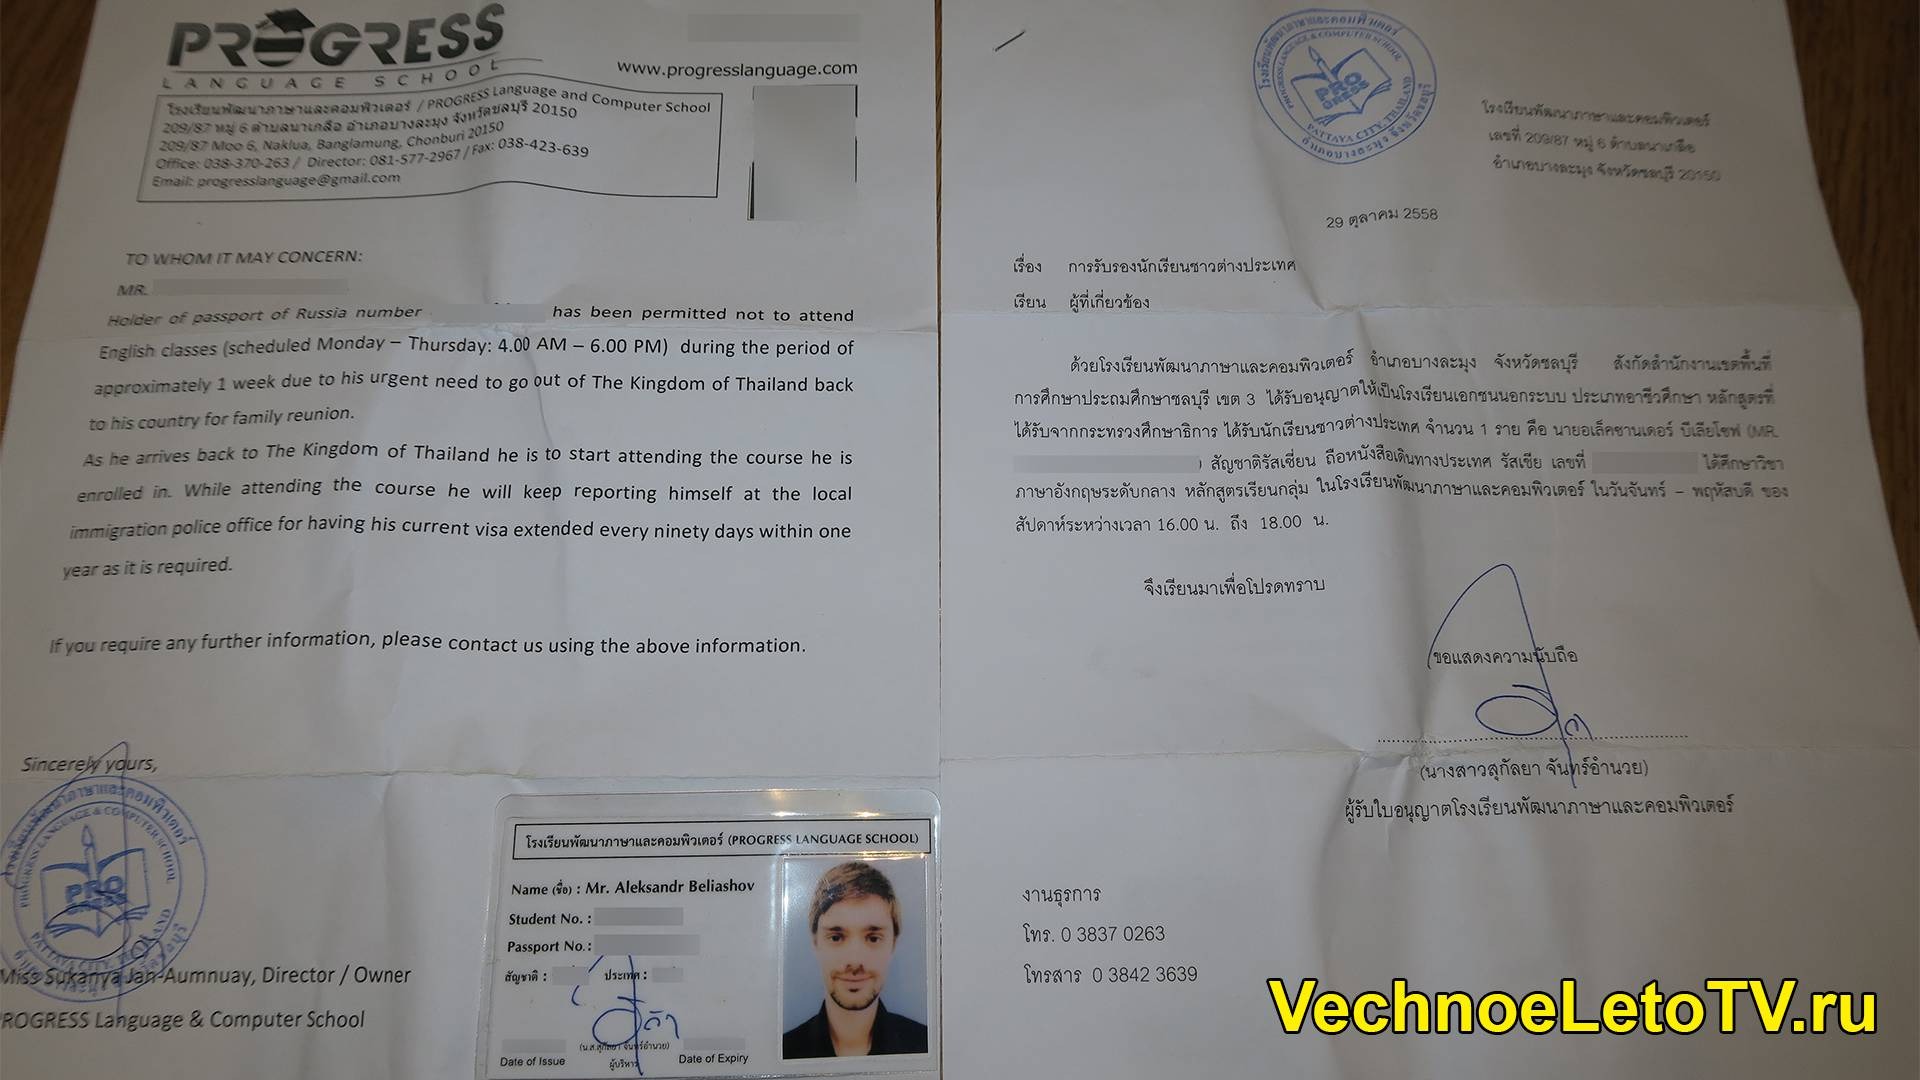 Re-entry school documents thailand - Как сделать риентри (Re-entry) в Таиланде